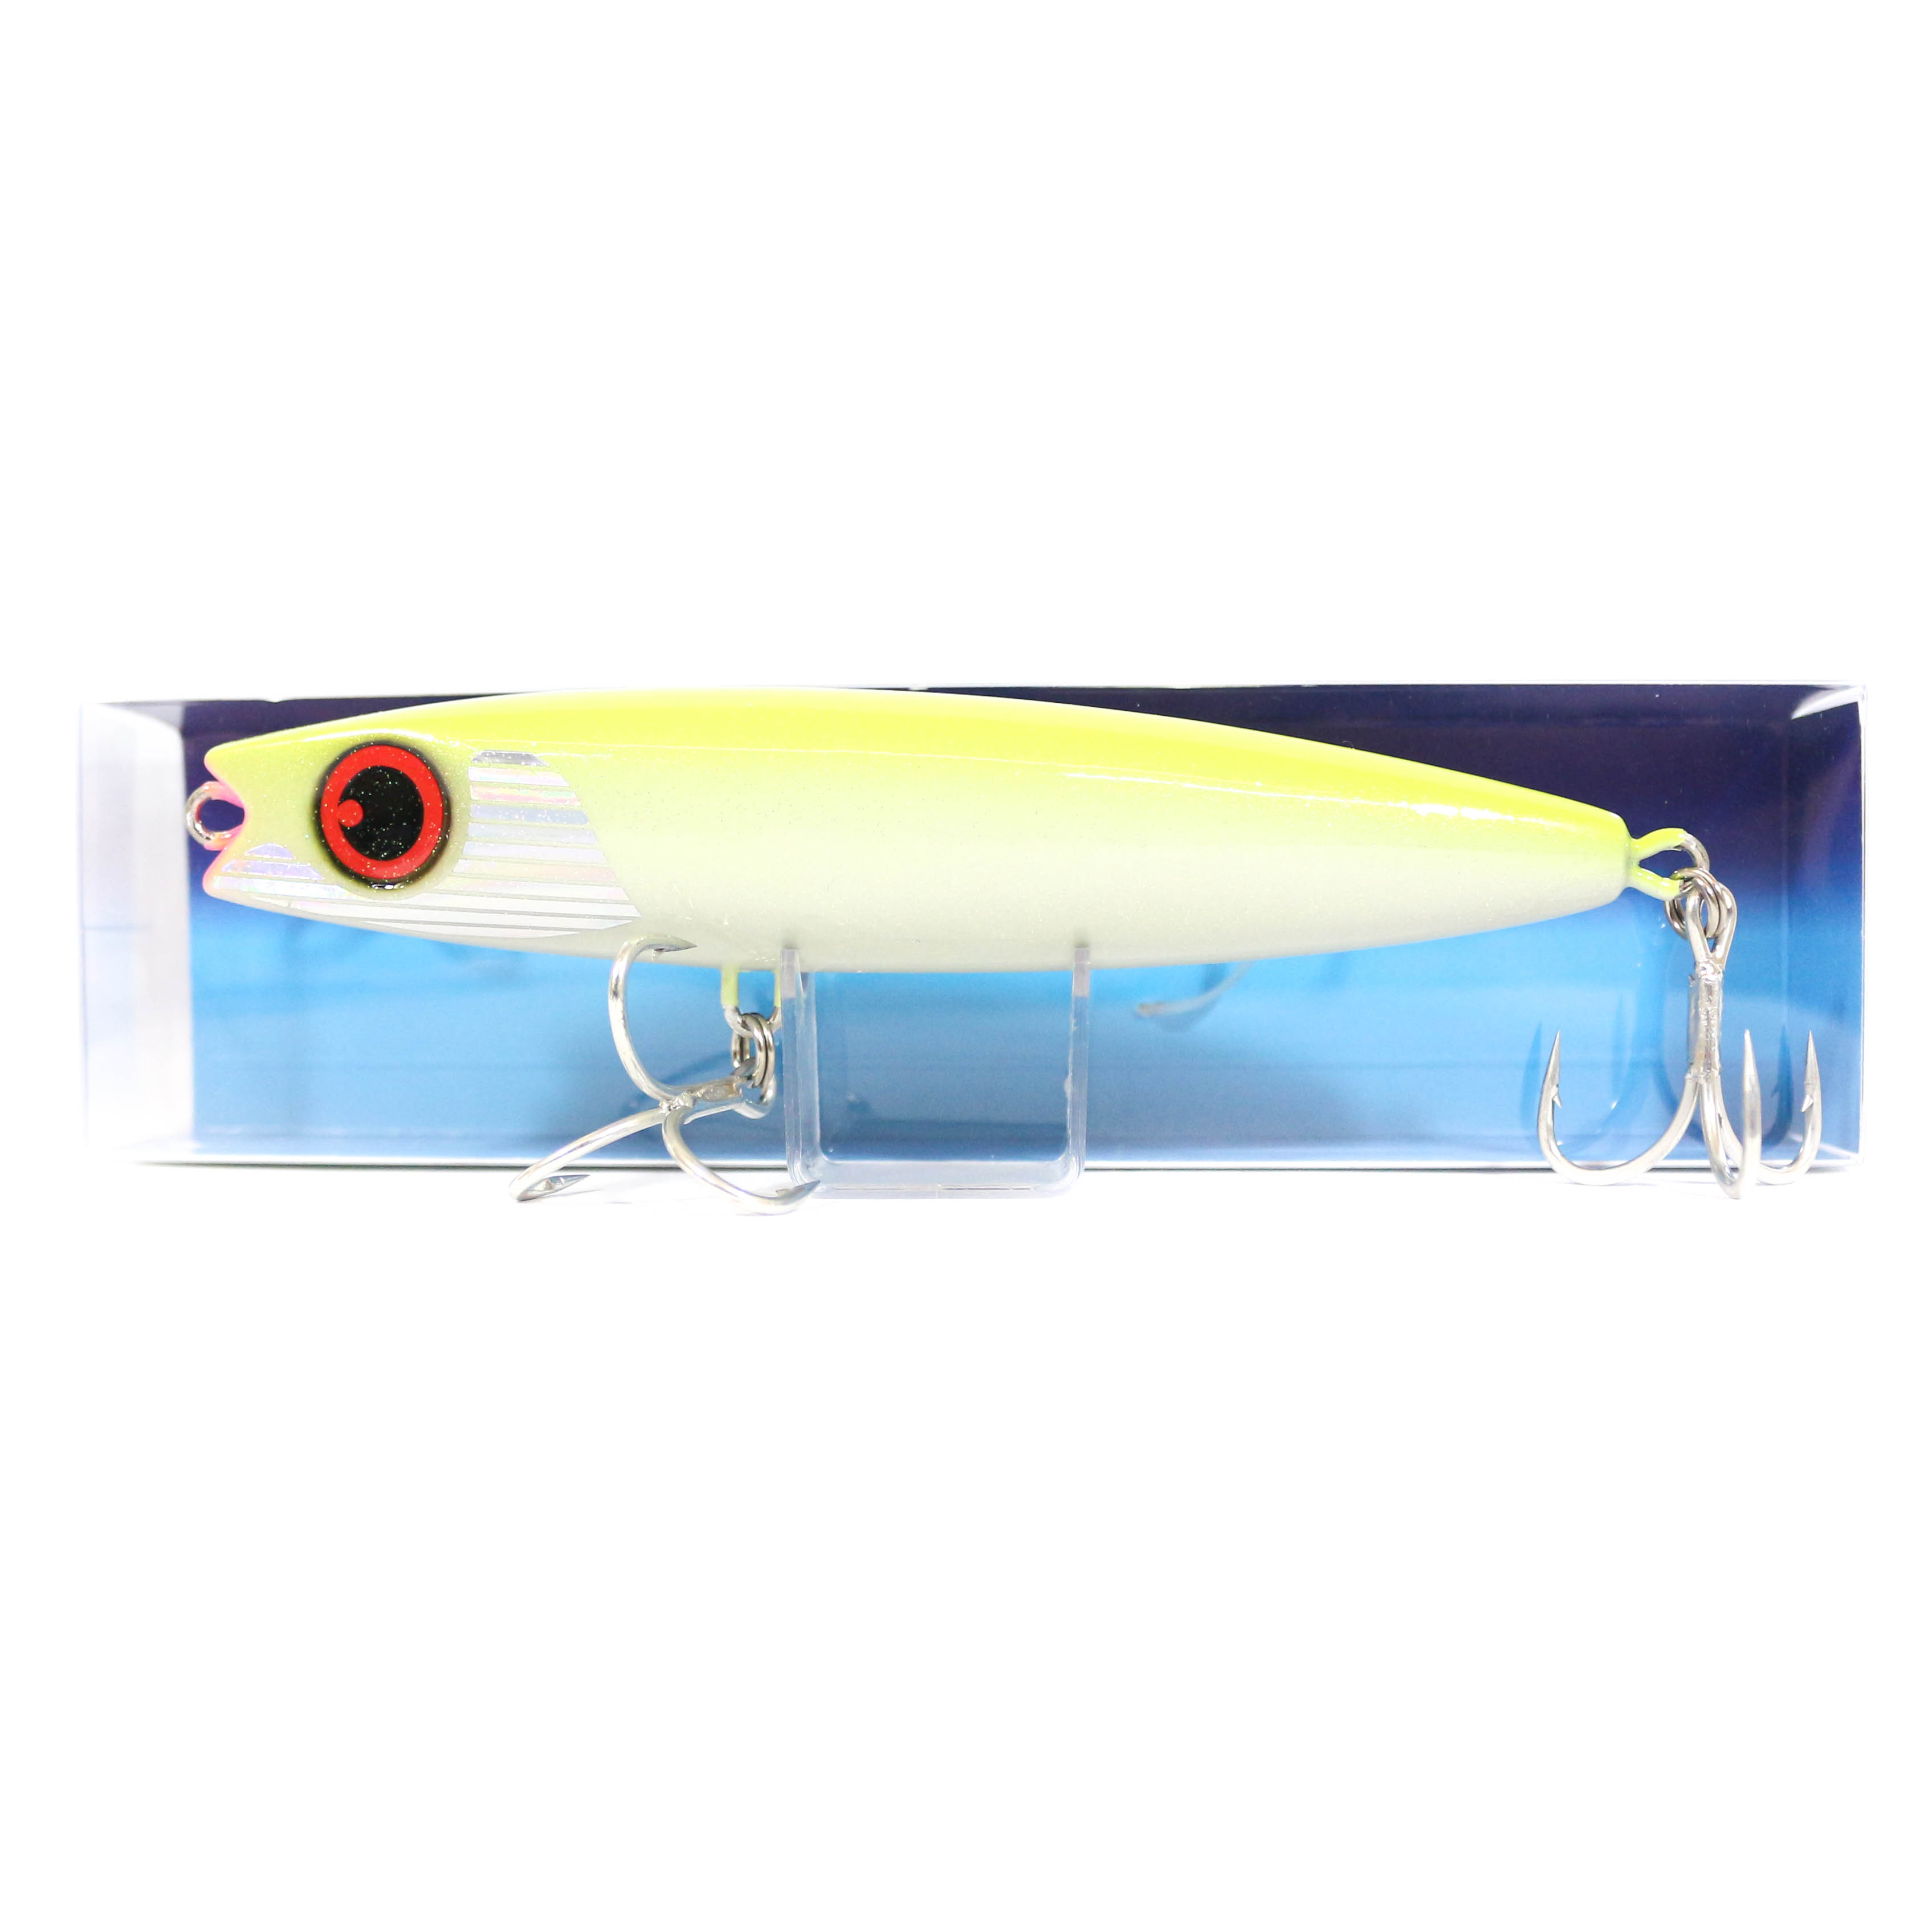 FCL Labo Stick Bait CSP 145 Slim Floating Lure 46 grams MGCH (4175)